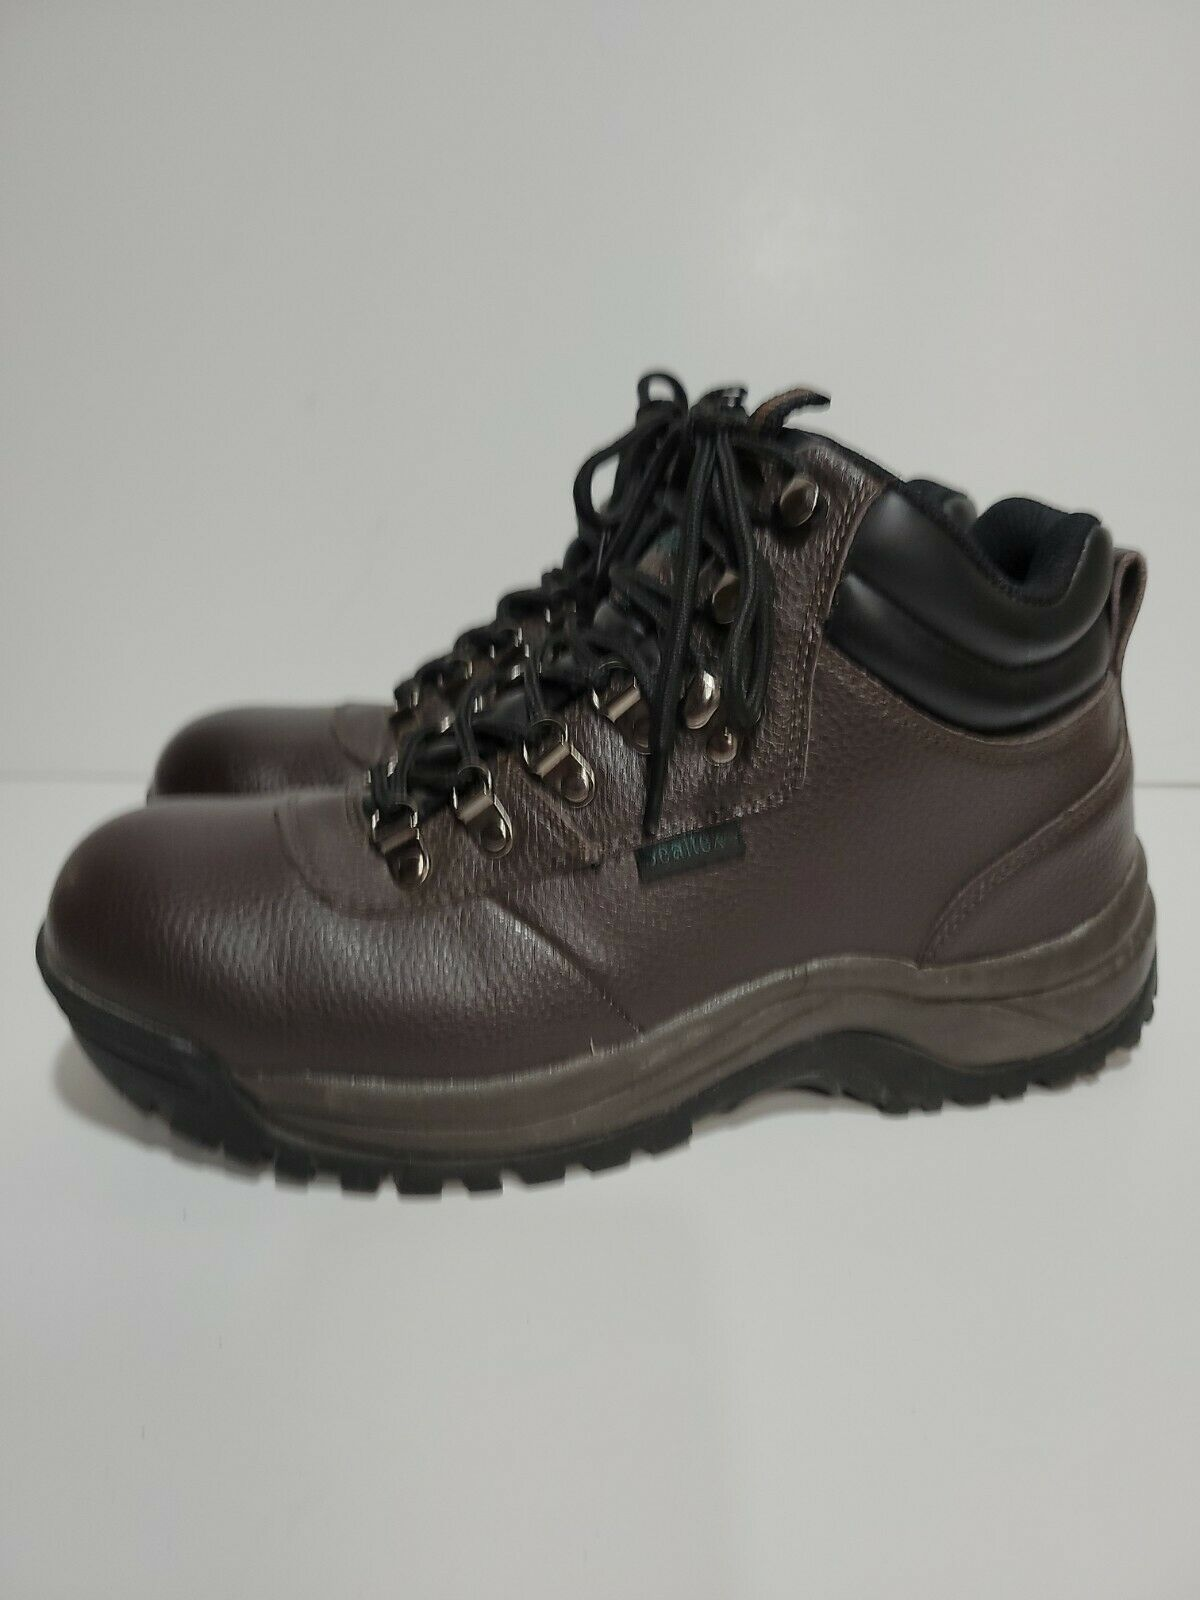 PROPET M3188 BROWN LEATHER WATERPROOF WORK HIKING ANKLE MENS 8.5 (5E)BOOTS